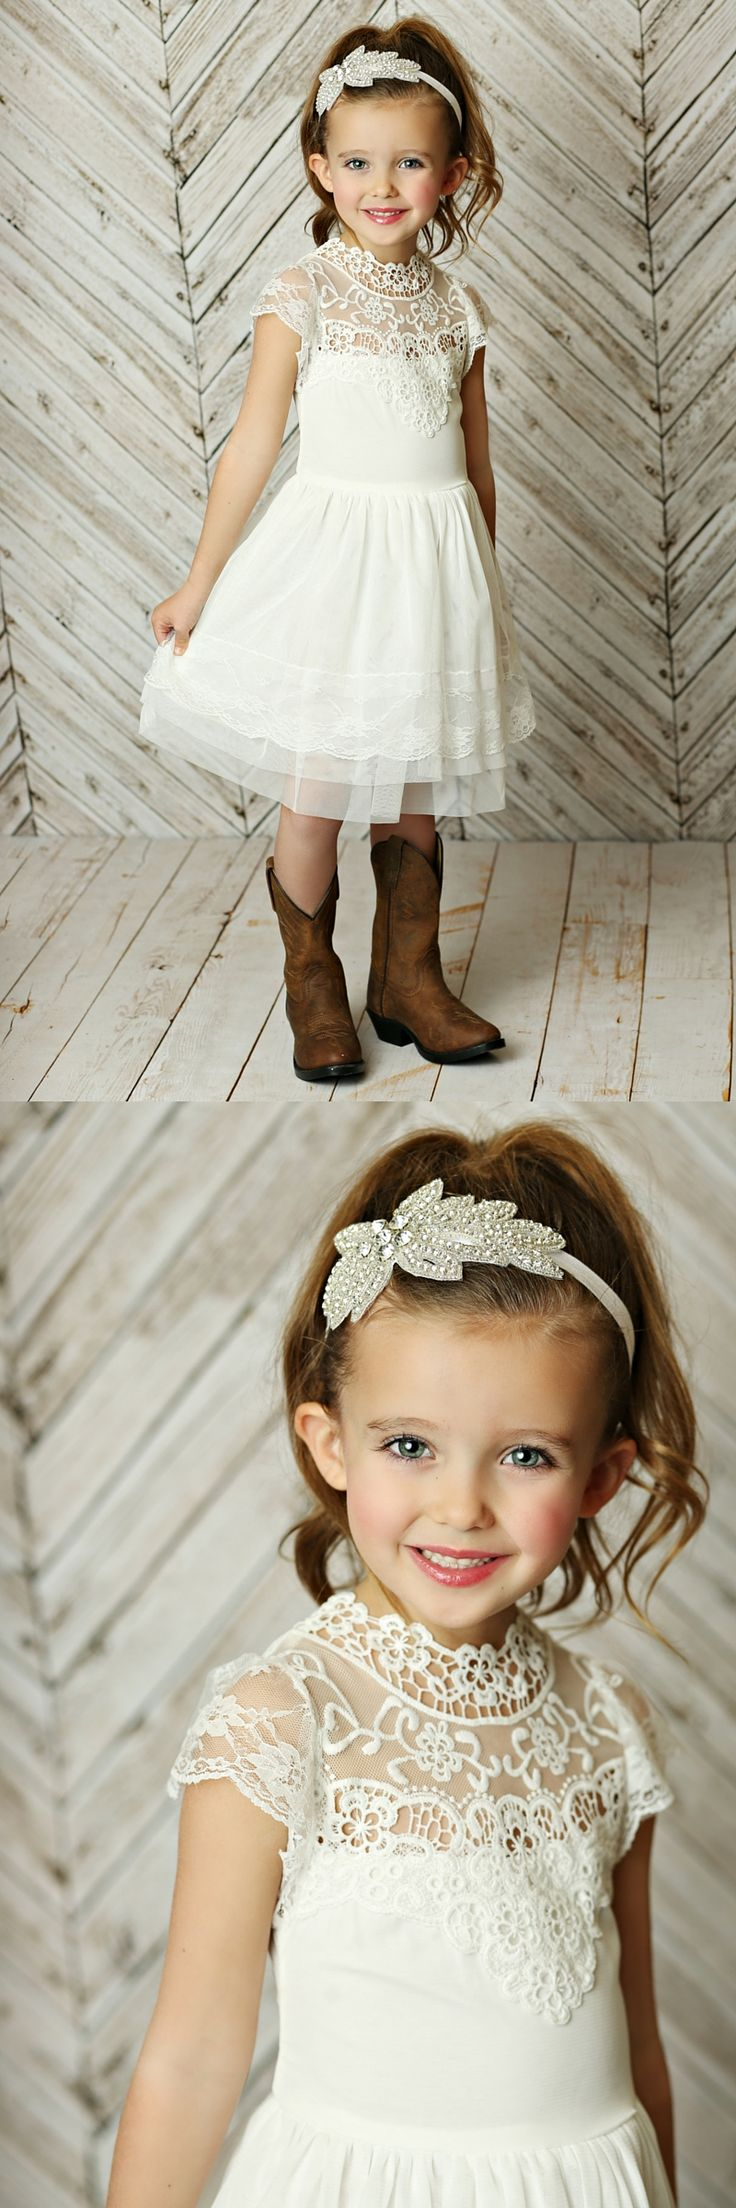 This white lace dress has so many beautiful details. Made of soft and delicate fabrics in a stunning white color this cute flower girl dress is perfect for any occasion. The skirt is made of multi layer tulle for extra volume. The top of the dress is made of beautiful delicate crocheted detailed neckline. SHOP http://thinkpinkbows.com/products/believe-in-the-magic-dress-ivory-gold | Country Kids Fashion | Rustic Girls Dresses for Weddings | Girls Vintage Clothing